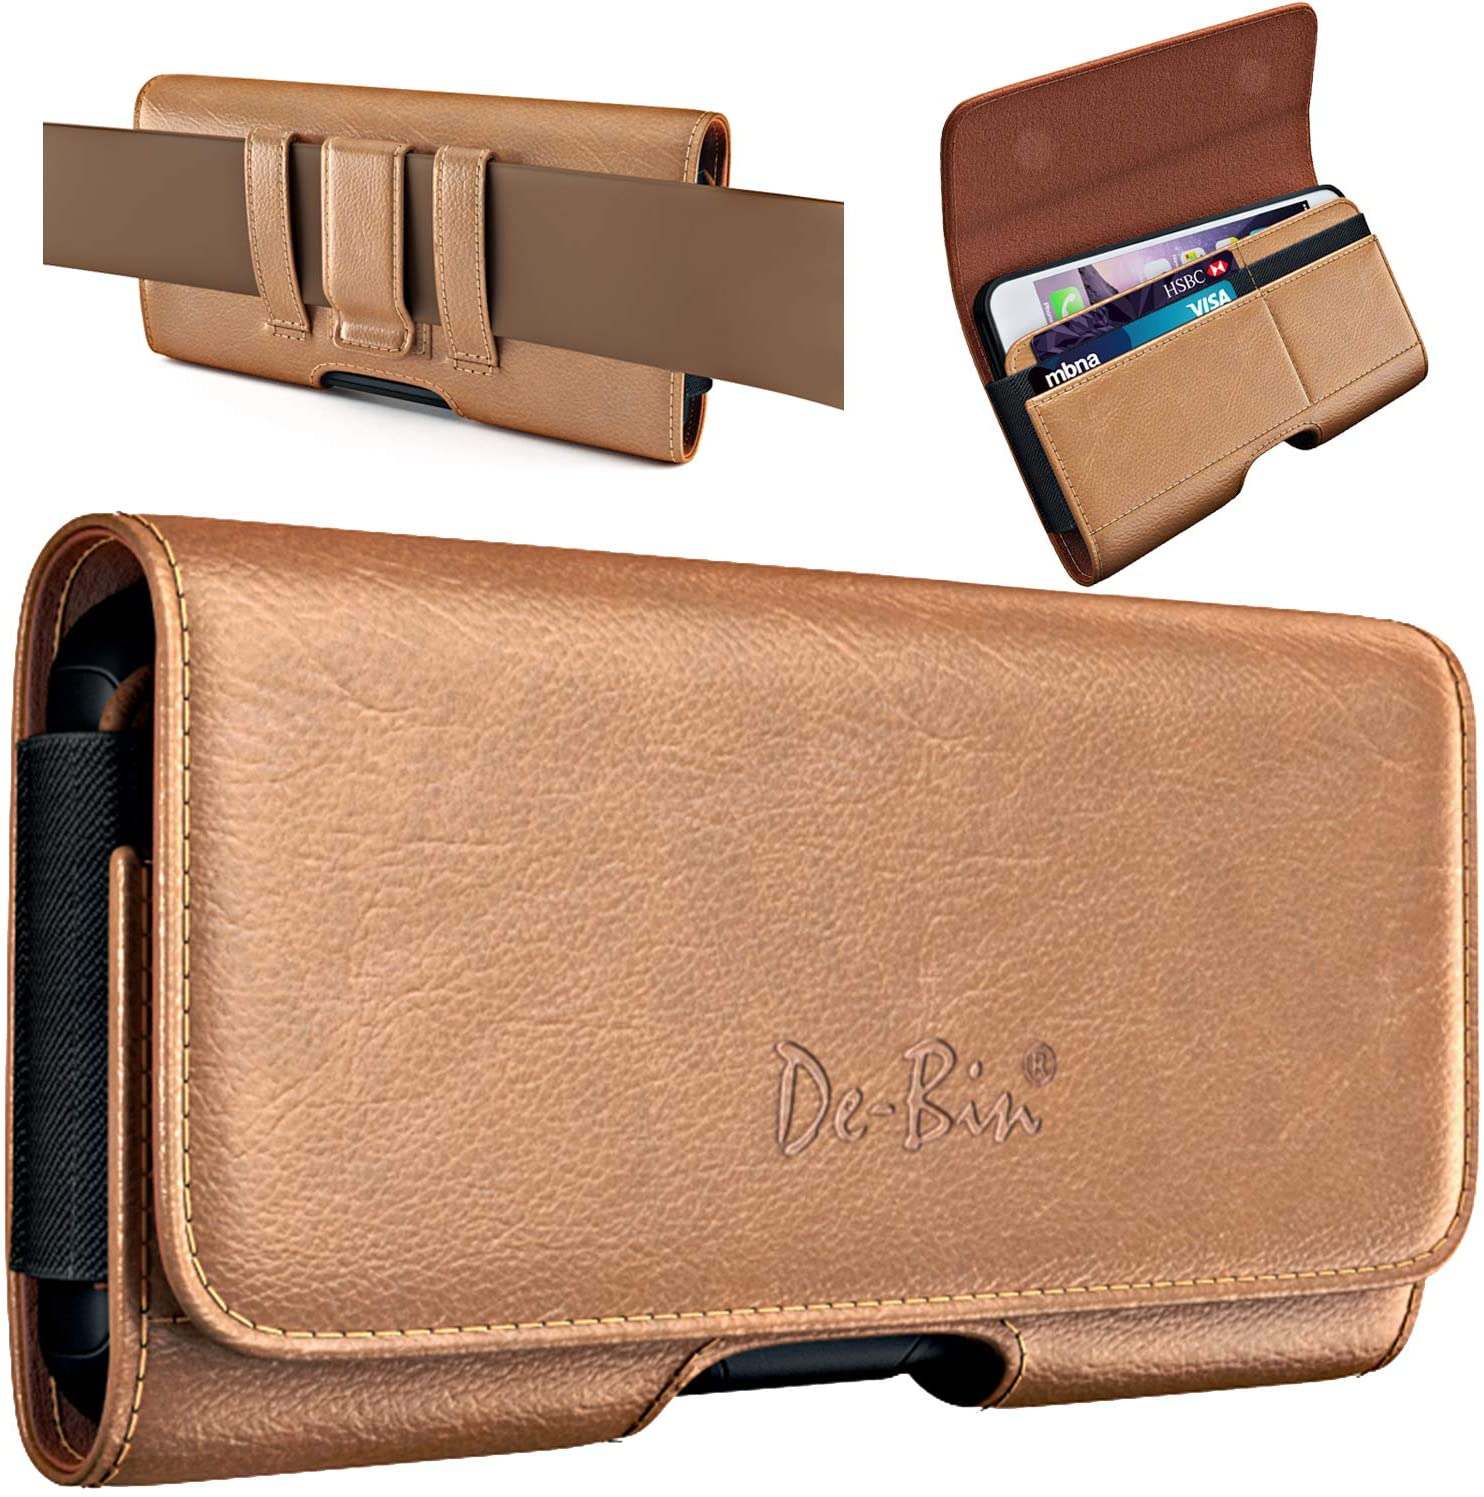 De-Bin Phone Holster Case Designed for iPhone 13 Pro Max, 12 Pro Max, 11 Pro Max, Xs Max Belt Case Holder Pouch with Belt Clip and Loops Card Pocket Sleeves Fits Apple Large iPhone with Case on Brown